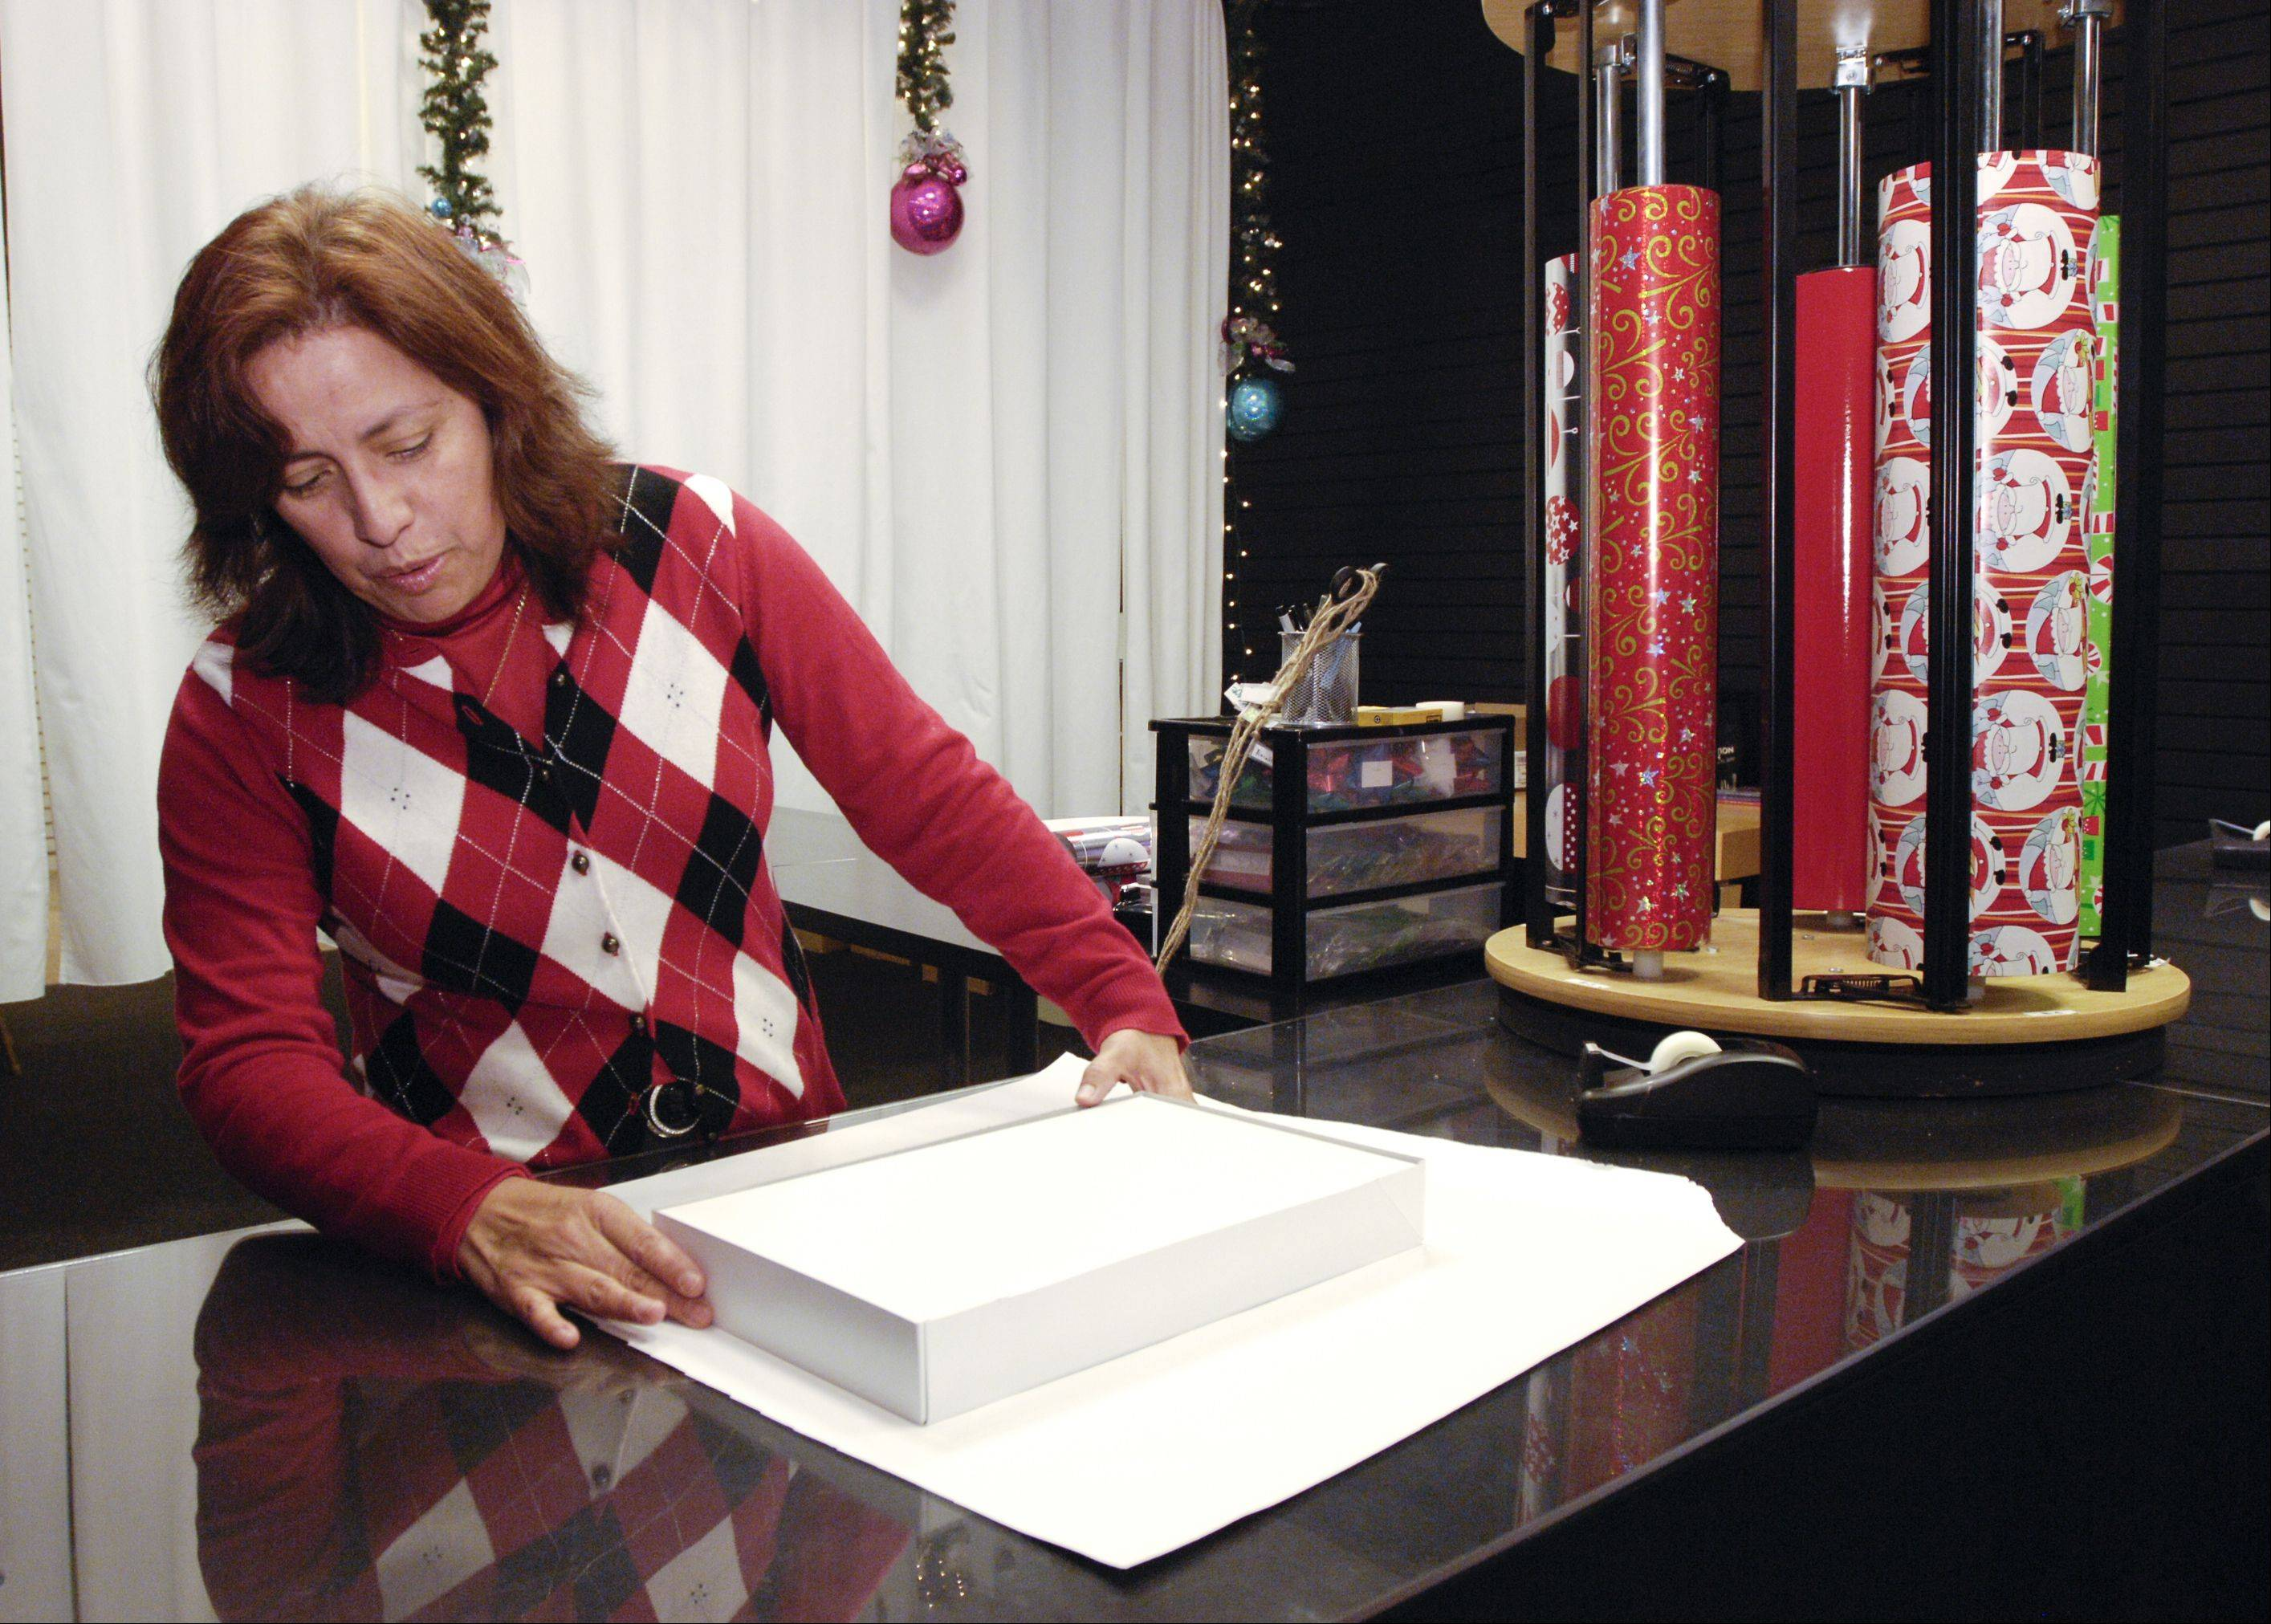 Lilly Grimm, who volunteers at Oakbrook Center's gift wrapping station, brings a unique approach -- and some real speed -- to her task.